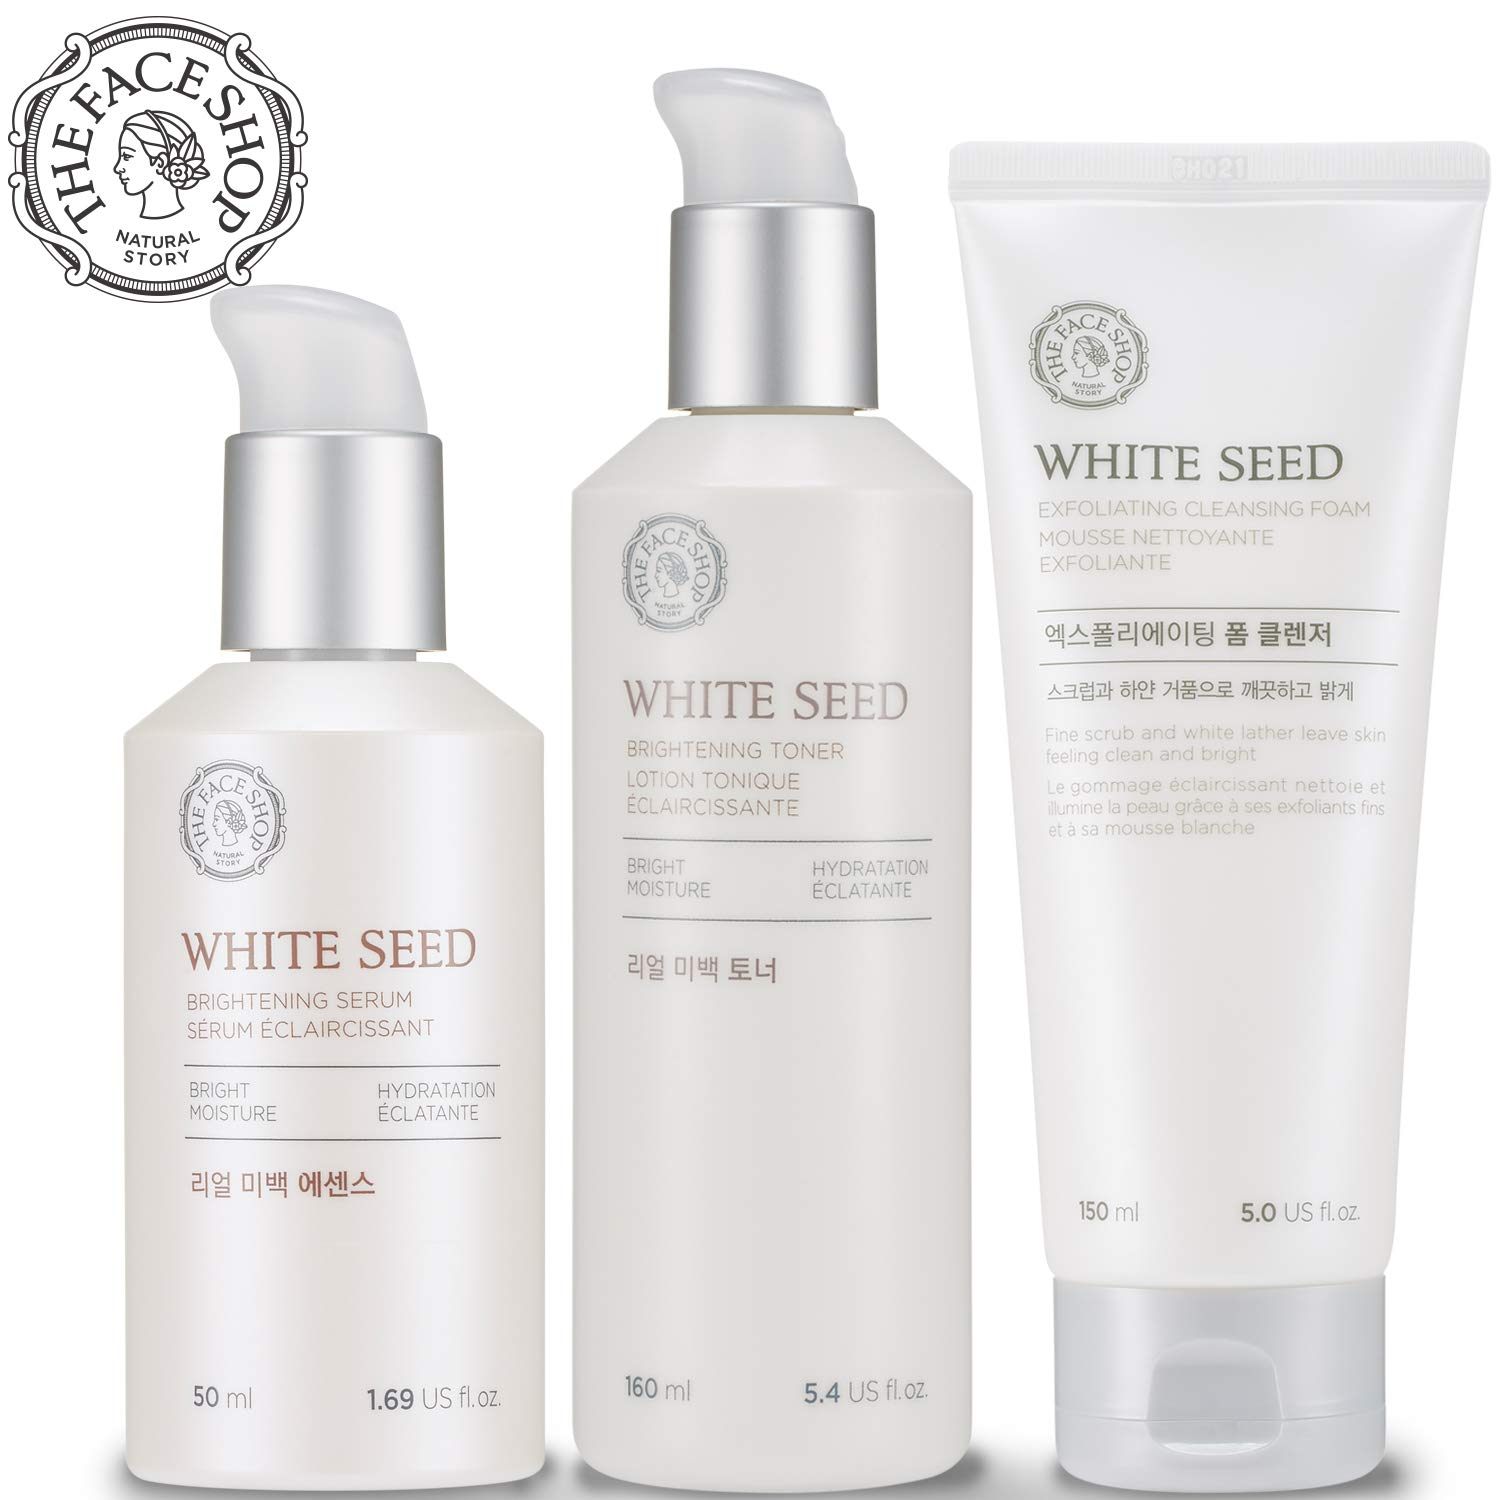 [THEFACESHOP] Korean Skin Care Set - Toner, Serum, and Cleansing Foam Brightening White Seed Gift Set